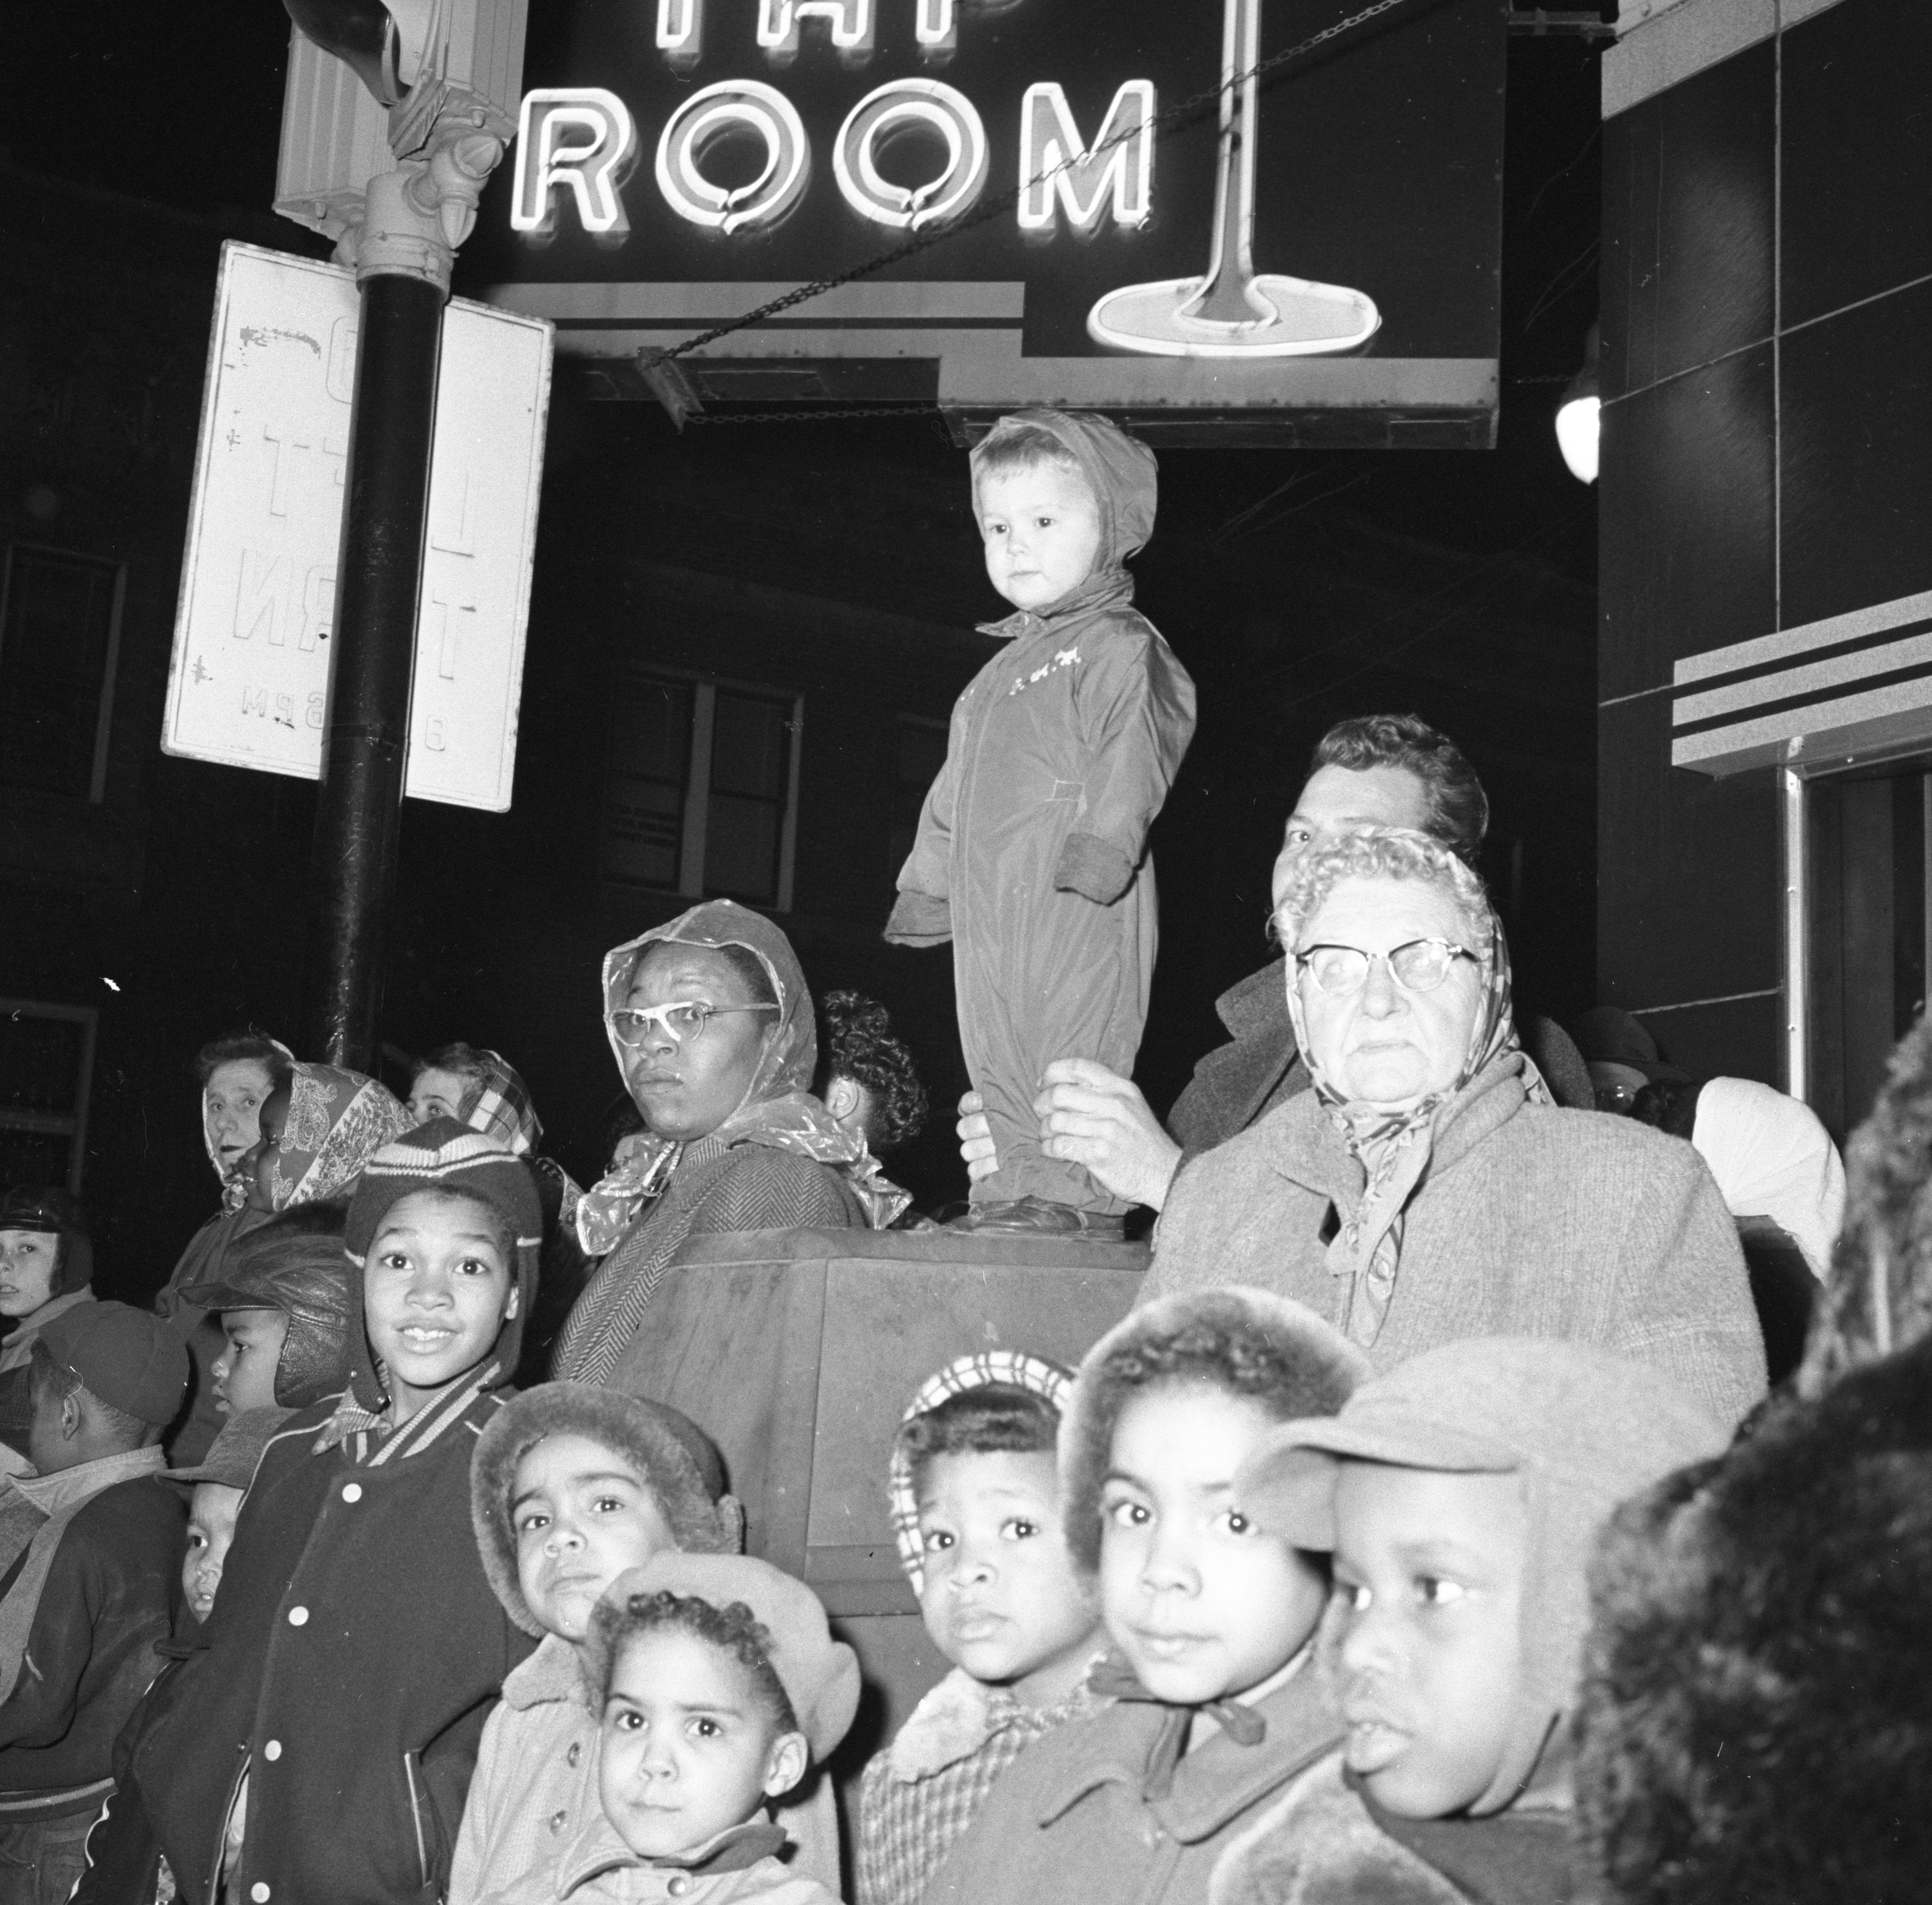 Jeffrey Craig Reed Watches From Atop A Trash Container Along The Ypsilanti Christmas Parade Route, December 1954 image